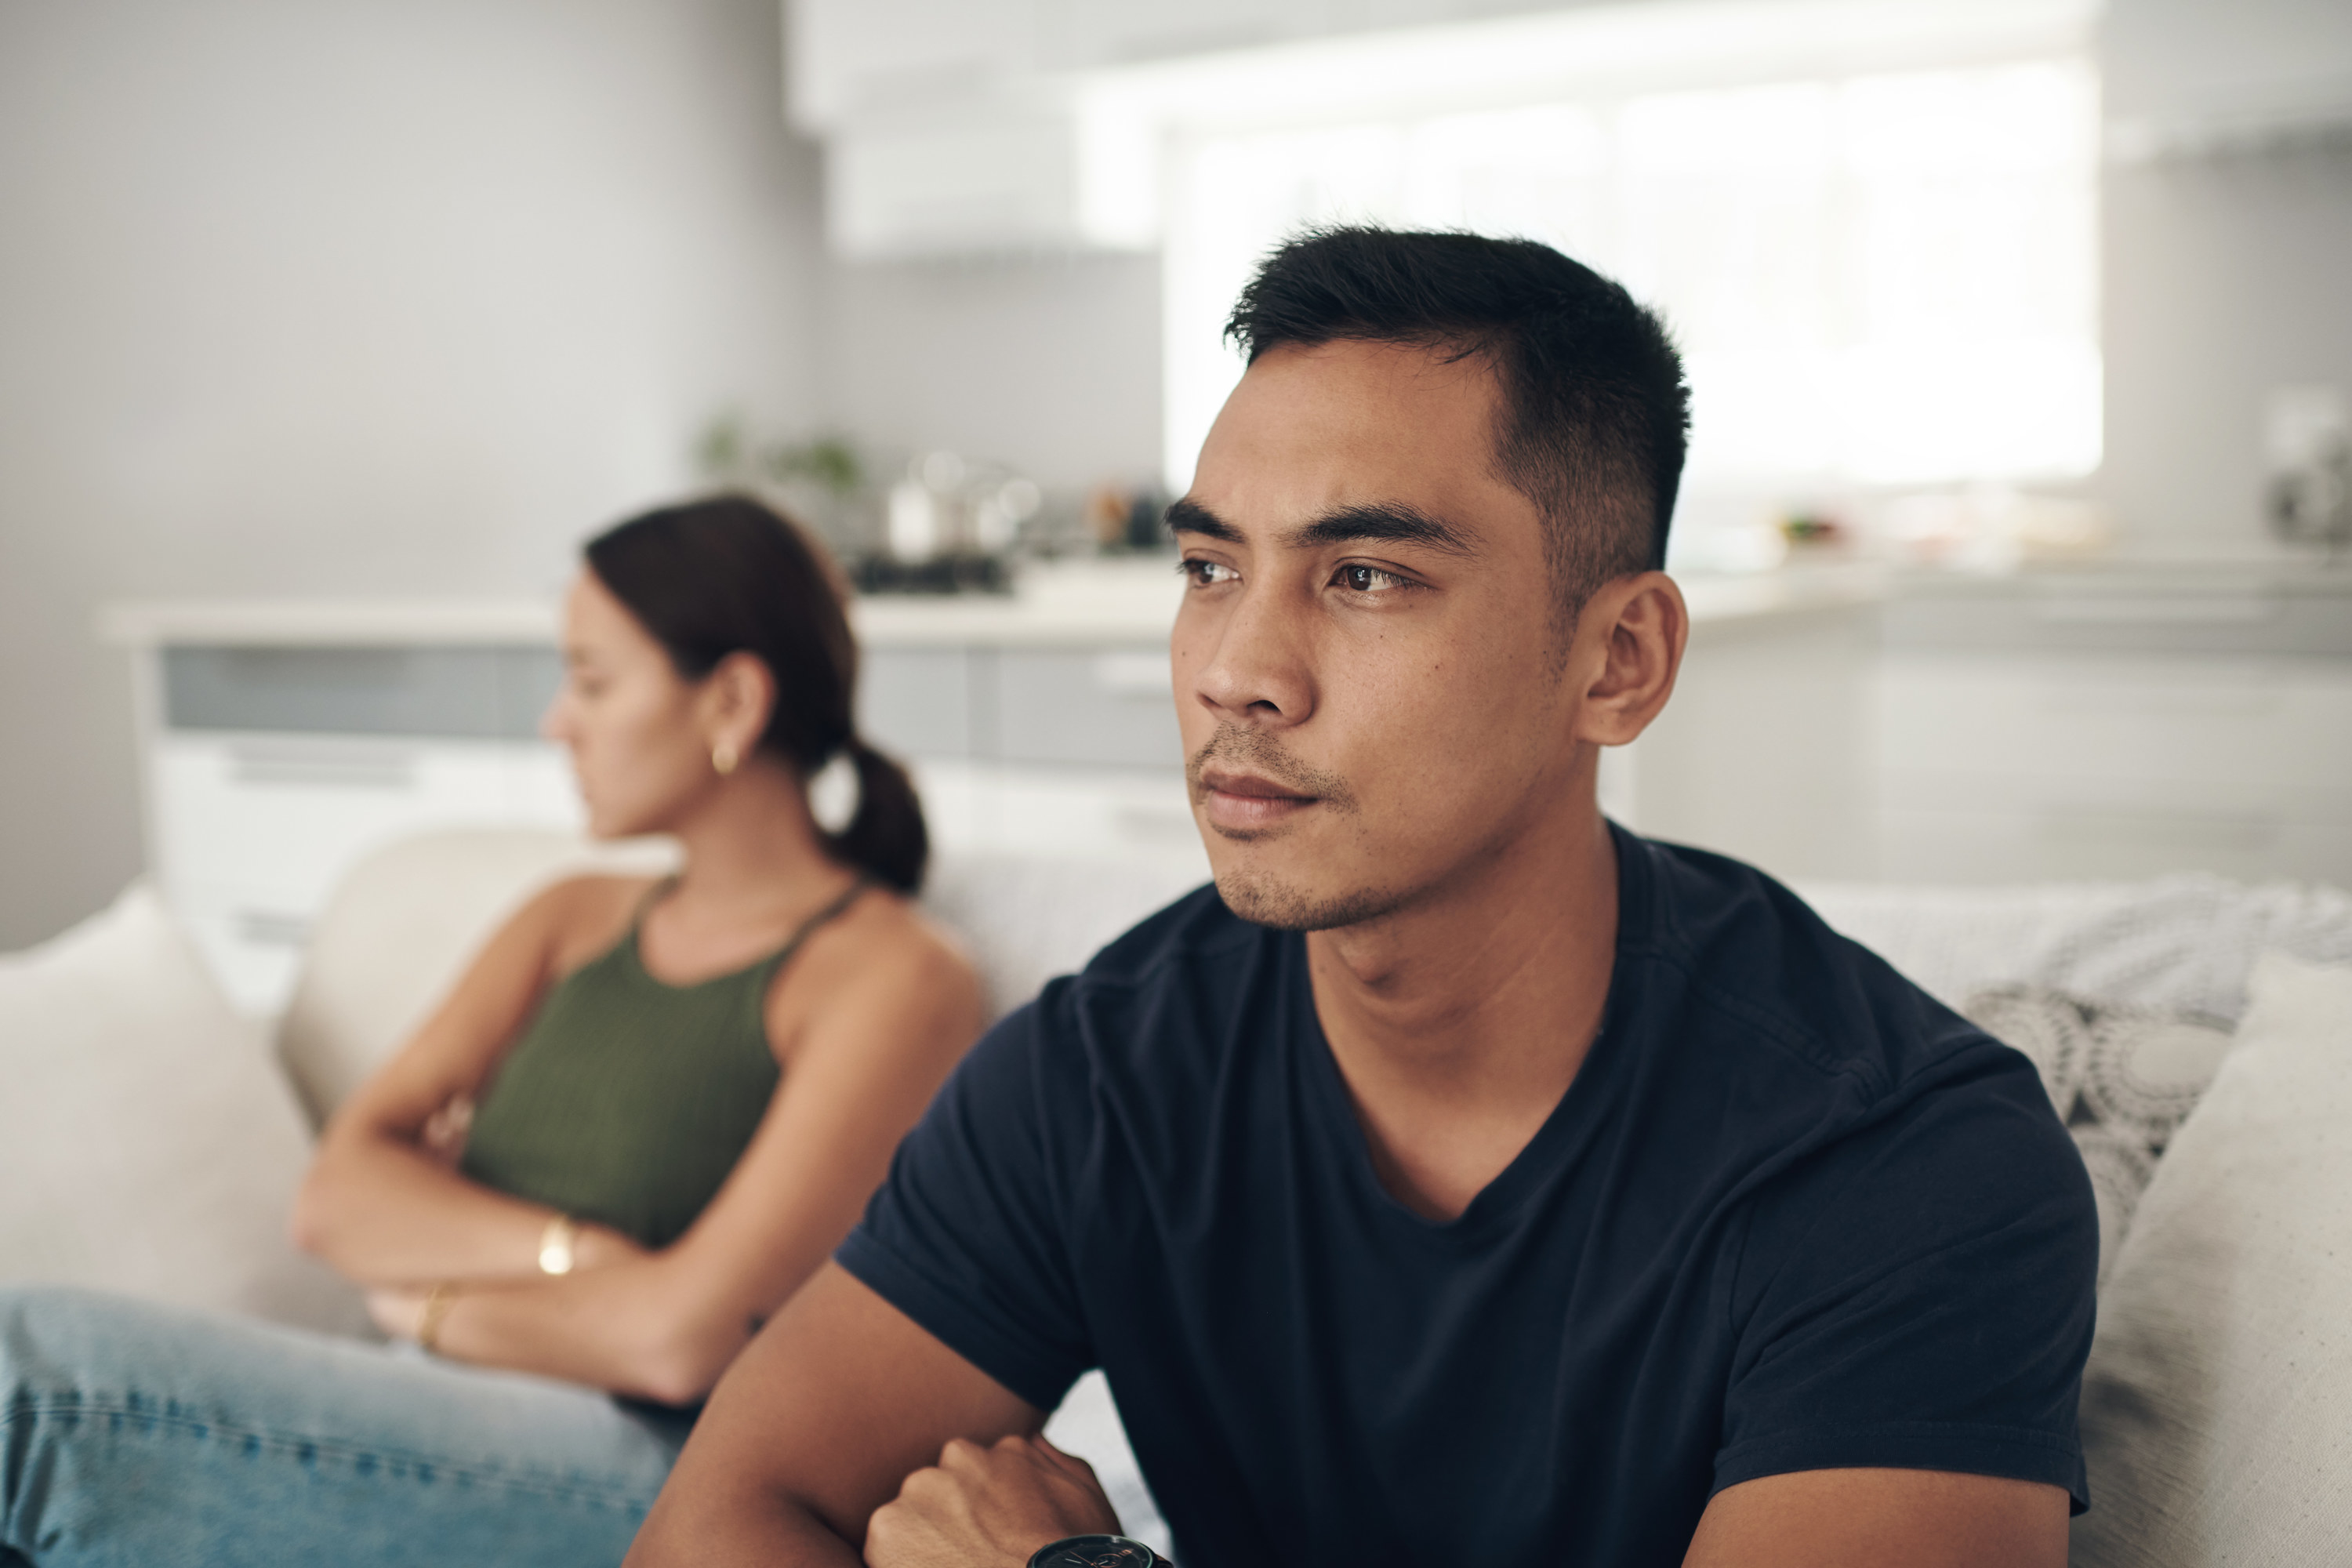 Couple with their arms crossed looking away from each other